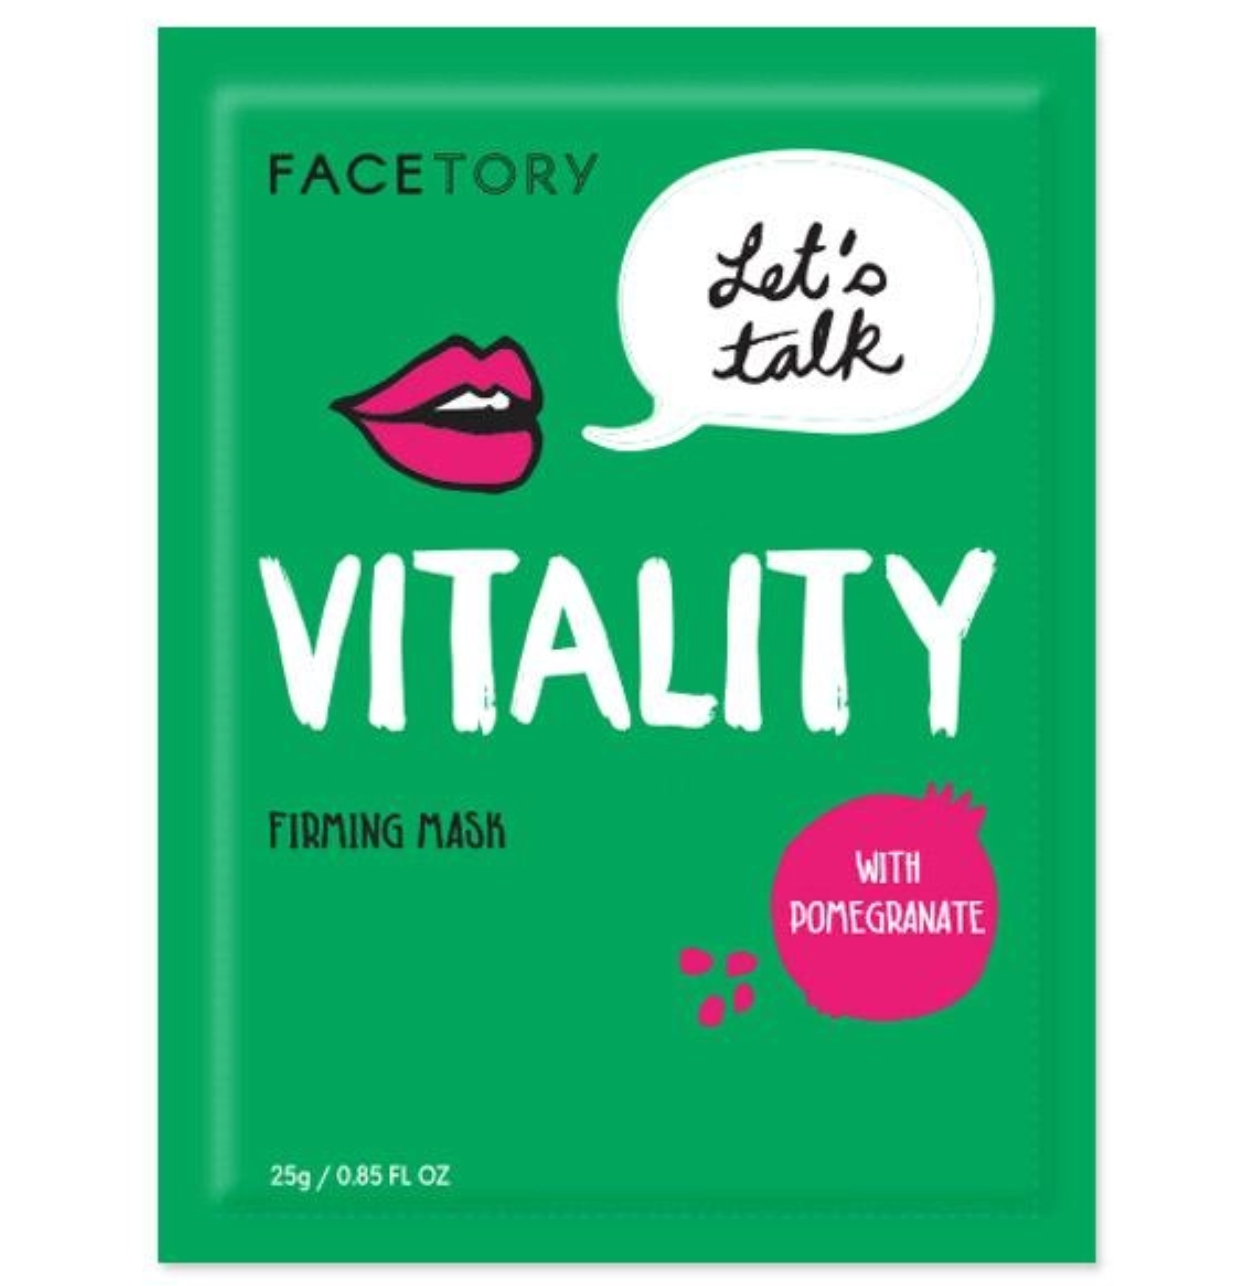 FaceTory Let's Talk Vitality Firming Mask